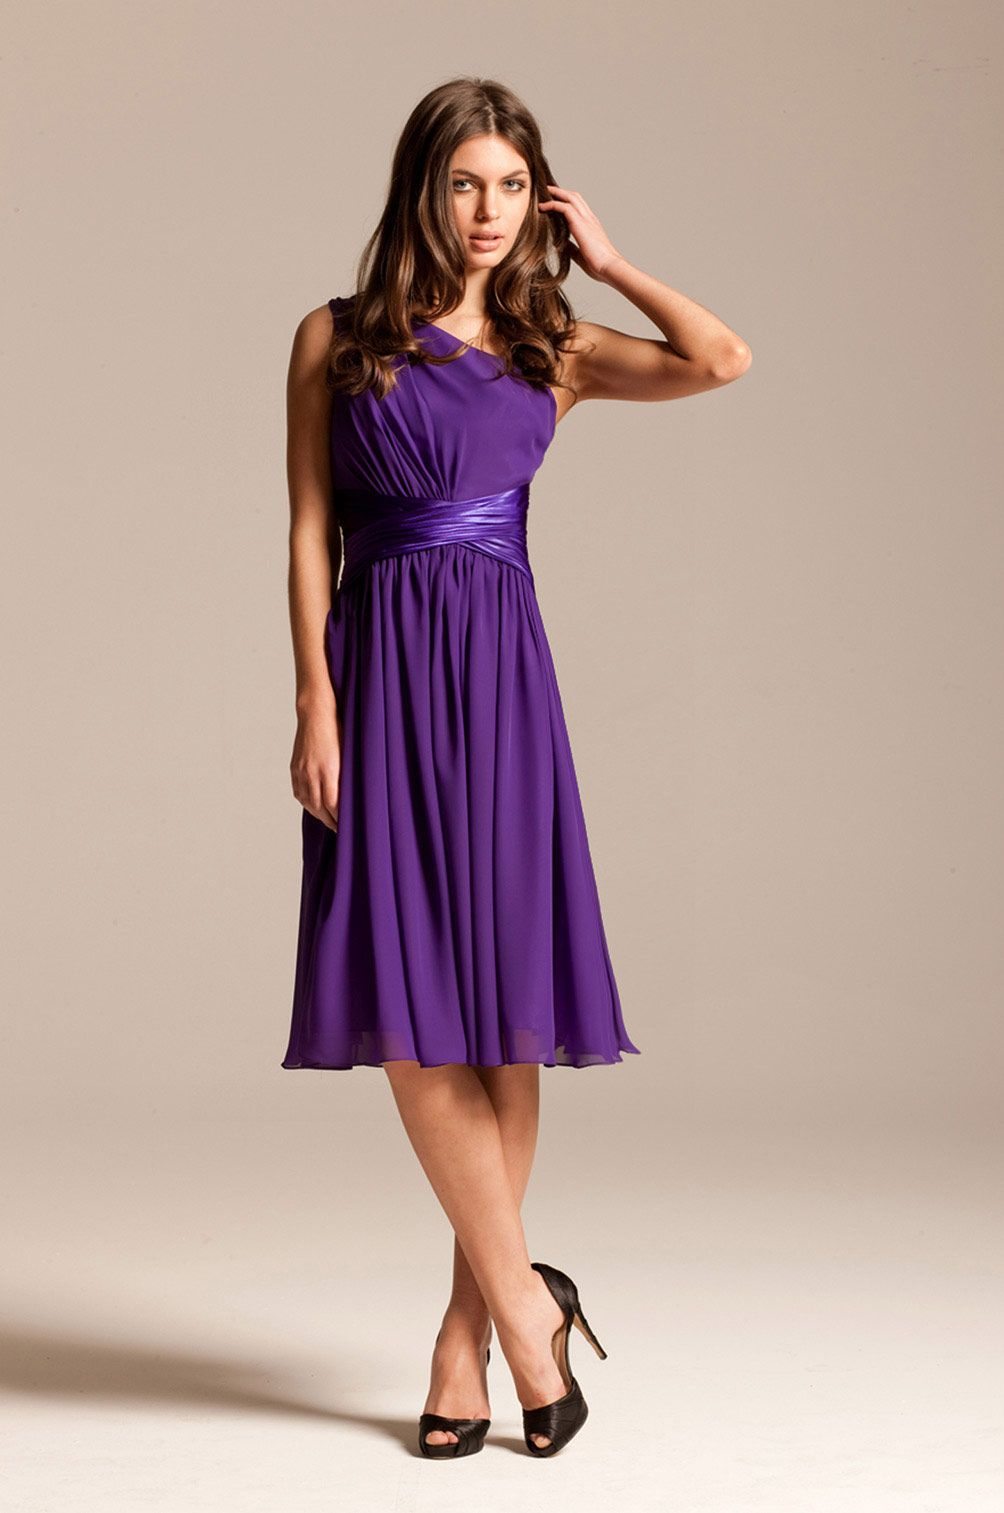 Purple-One-Shoulder-Cocktail-Dress- | My STYLE | Pinterest